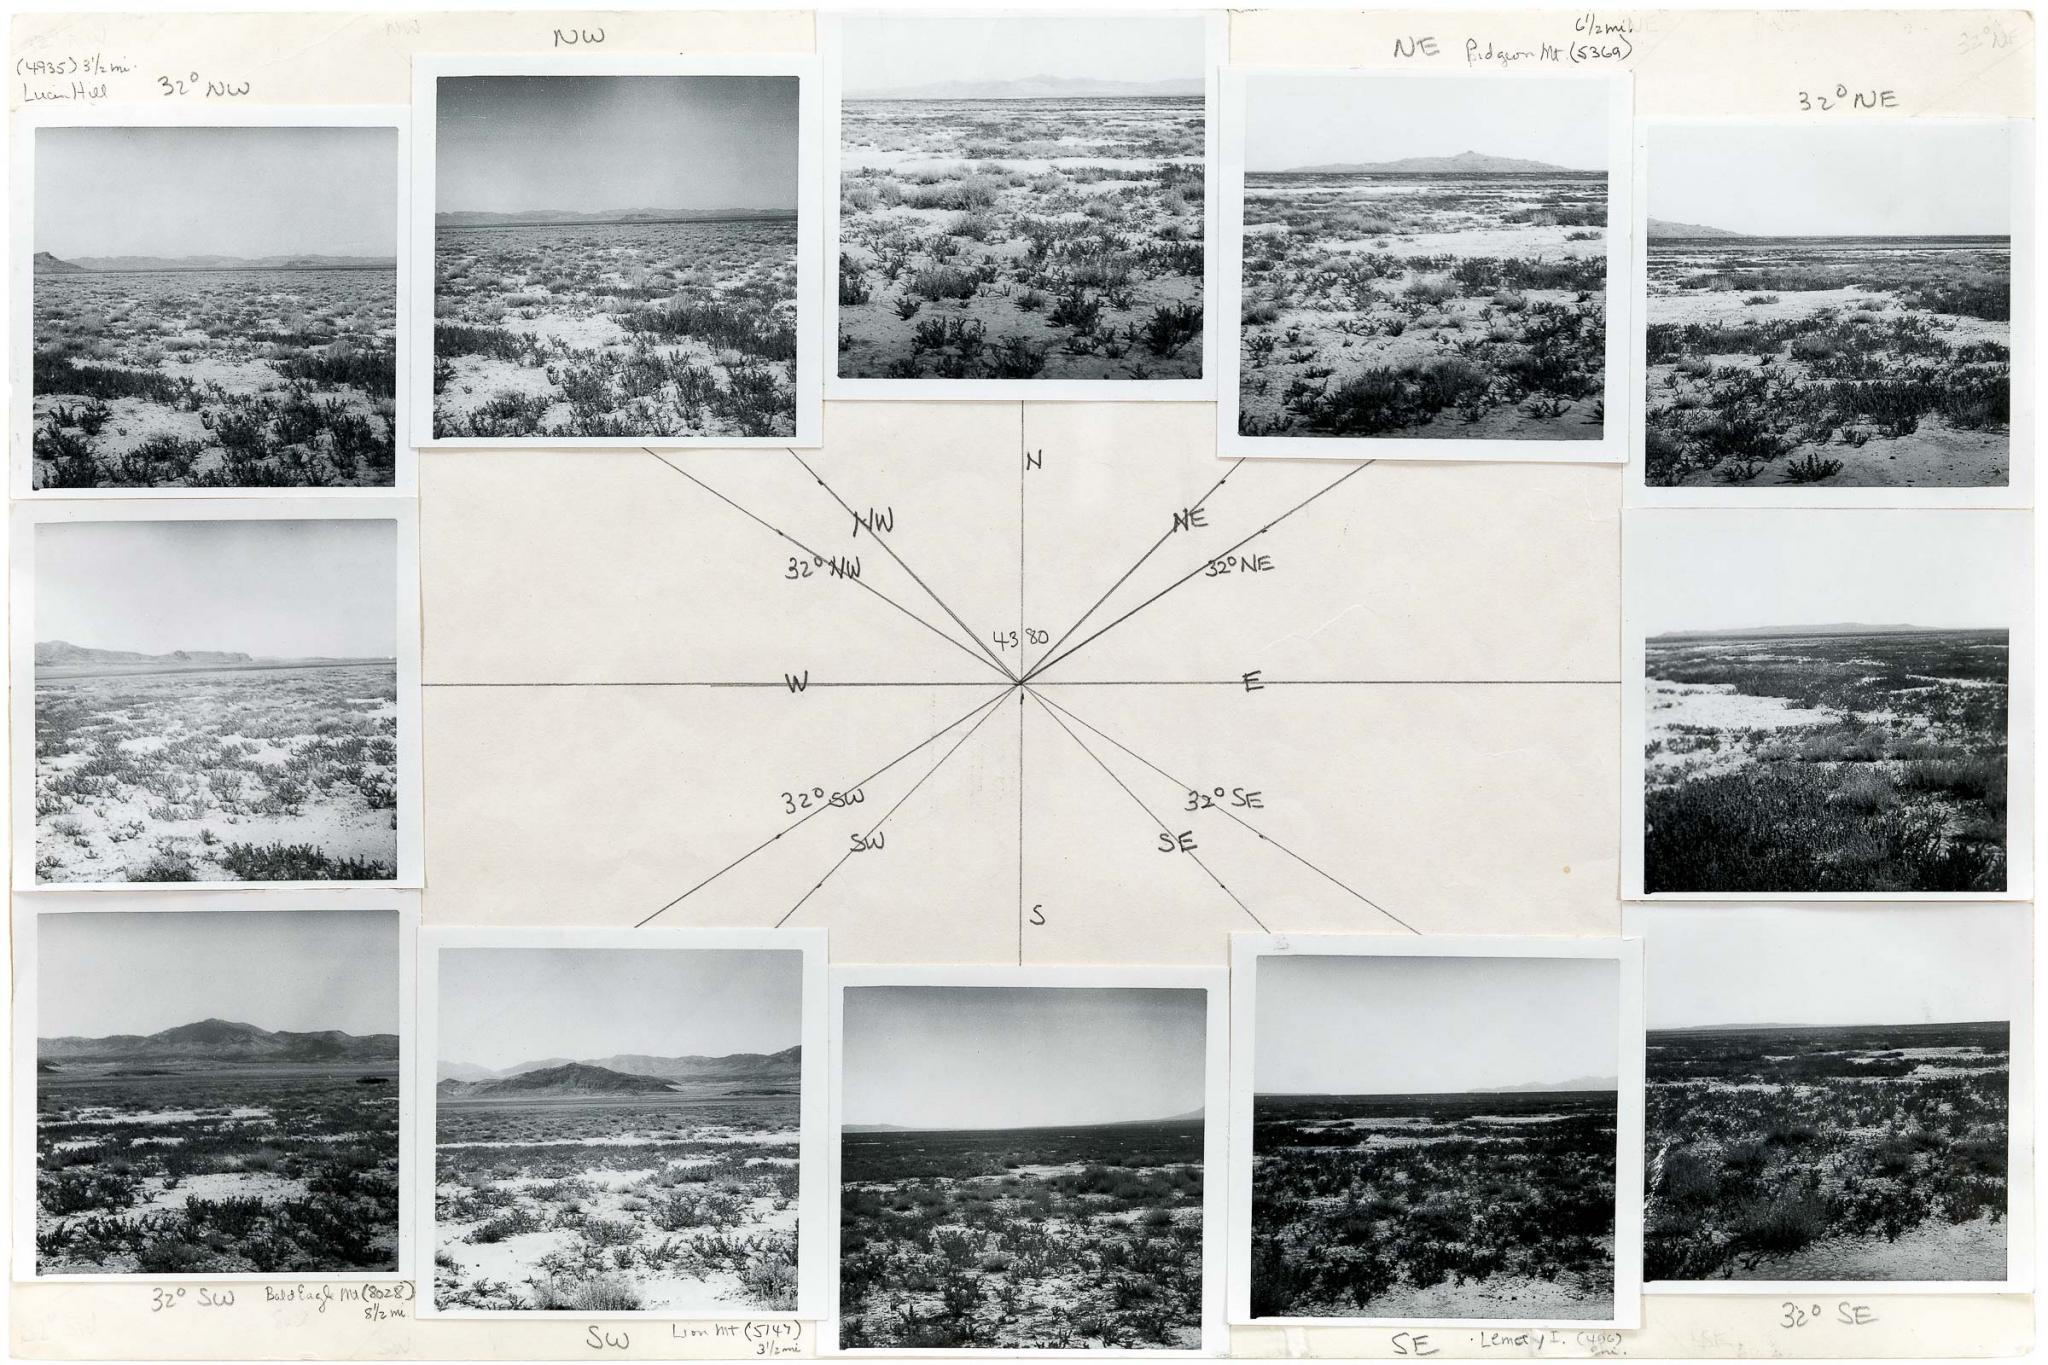 A preparatory on paper work for Sun Tunnels using graphite and twelve black and white photographs  showing the landscape panorama surrounding the Sun Tunnels site.